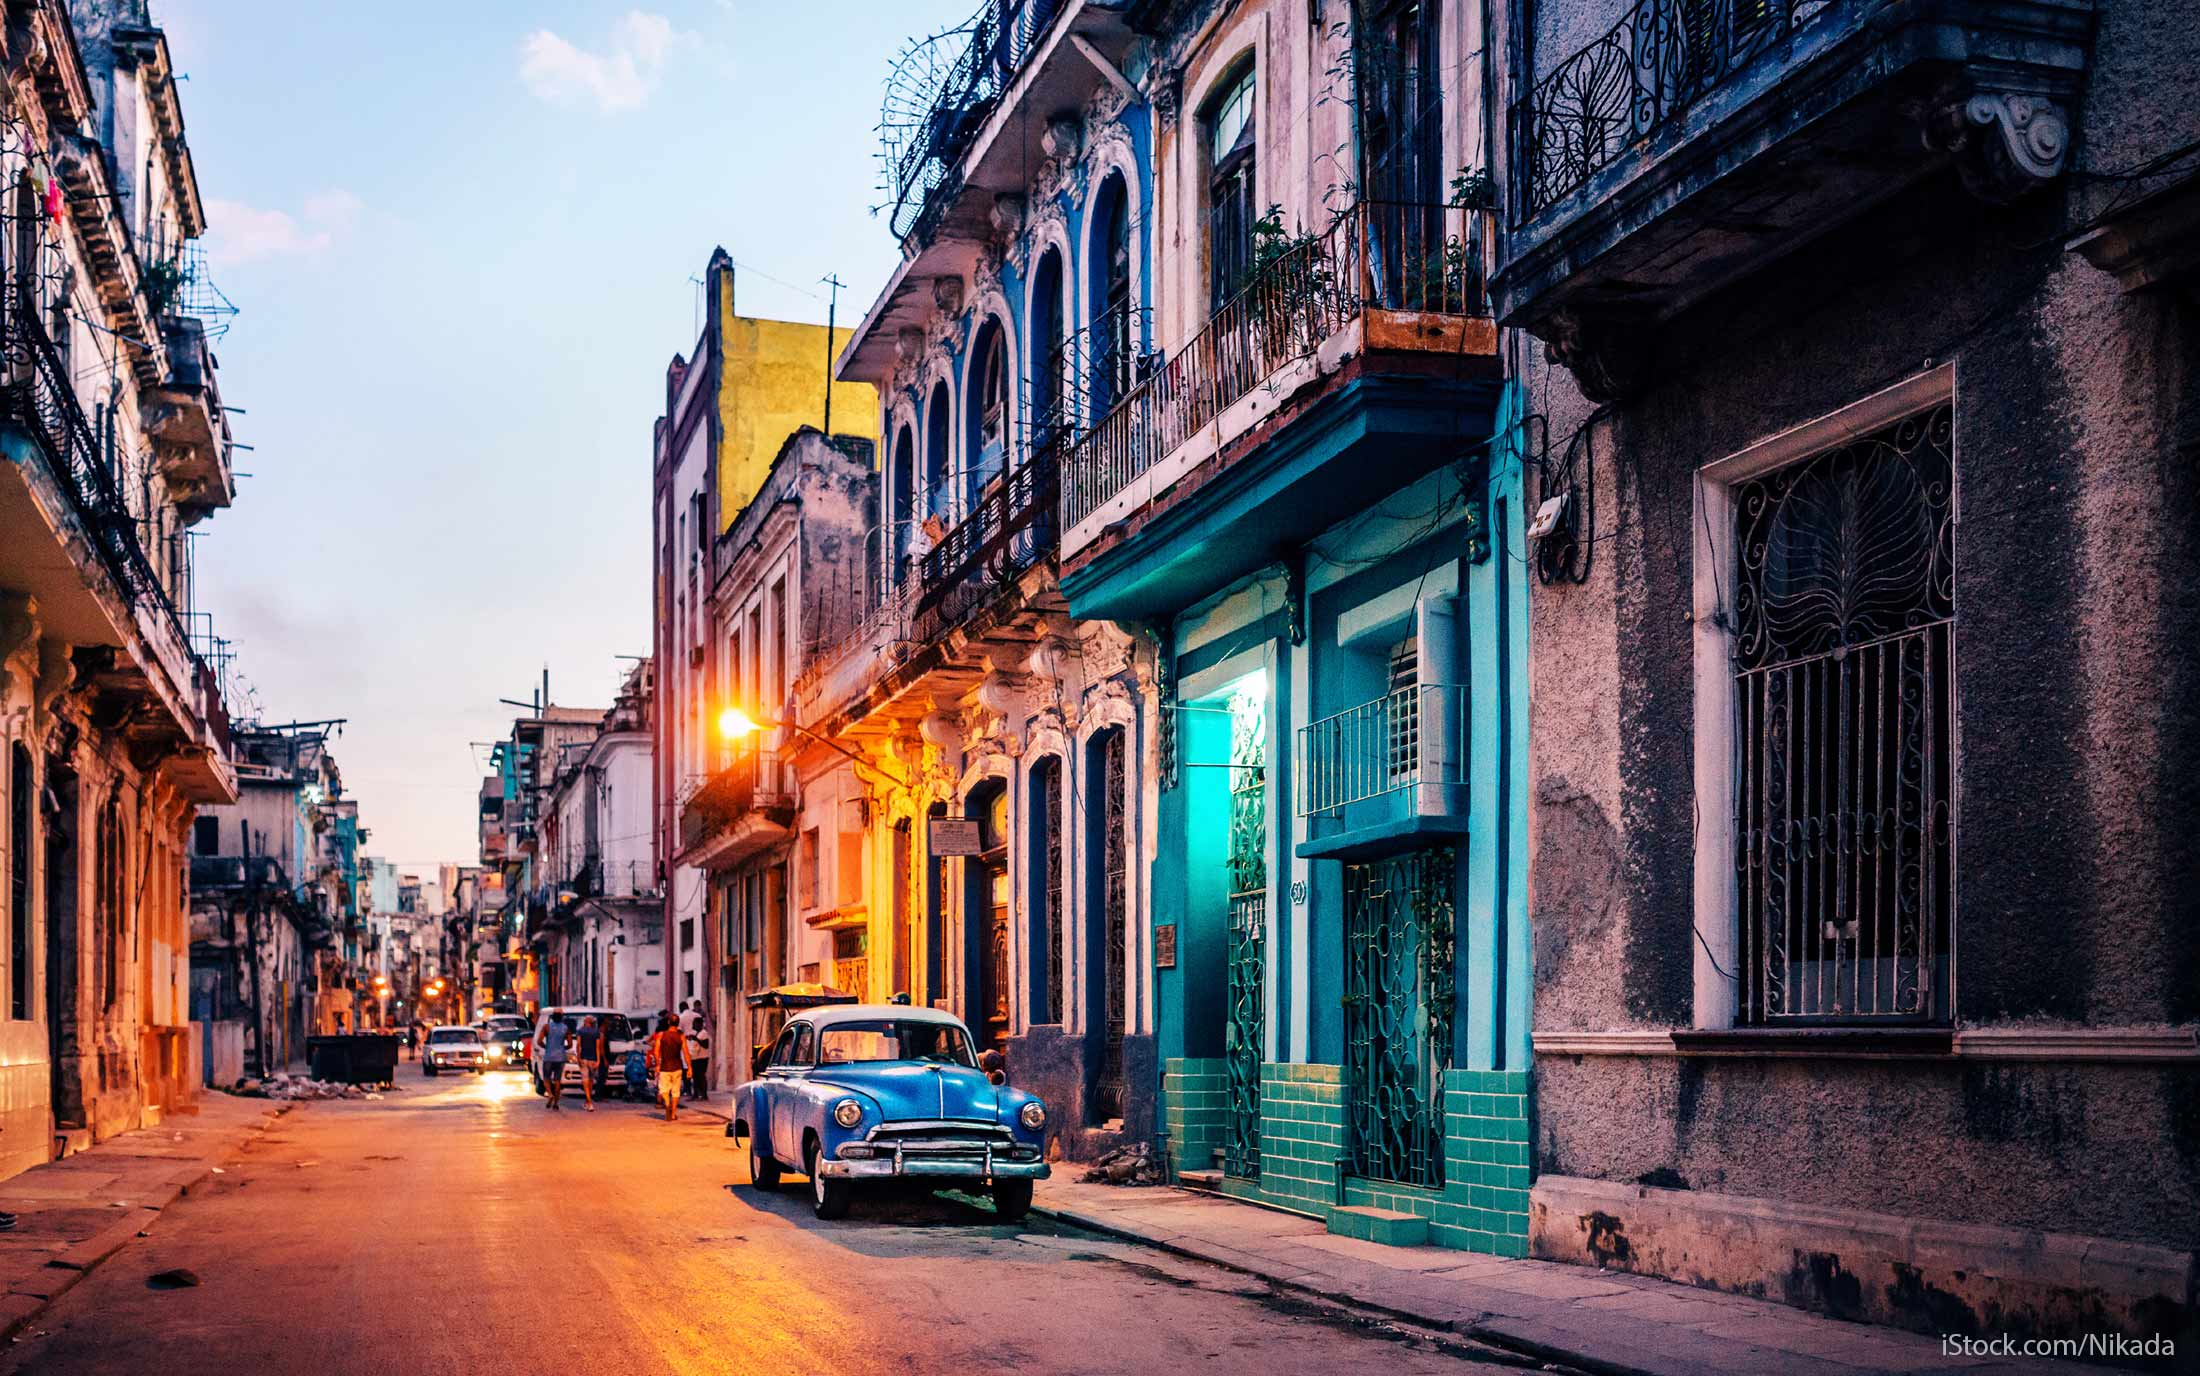 Cuba tourism photo of a street